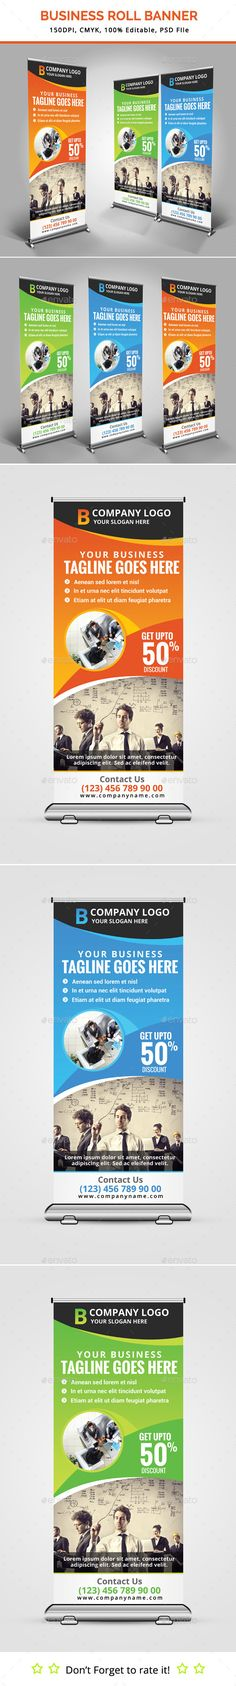 Business Roll Up Banner Template #design Download: http://graphicriver.net/item/business-roll-up-banner-v12/11884032?ref=ksioks